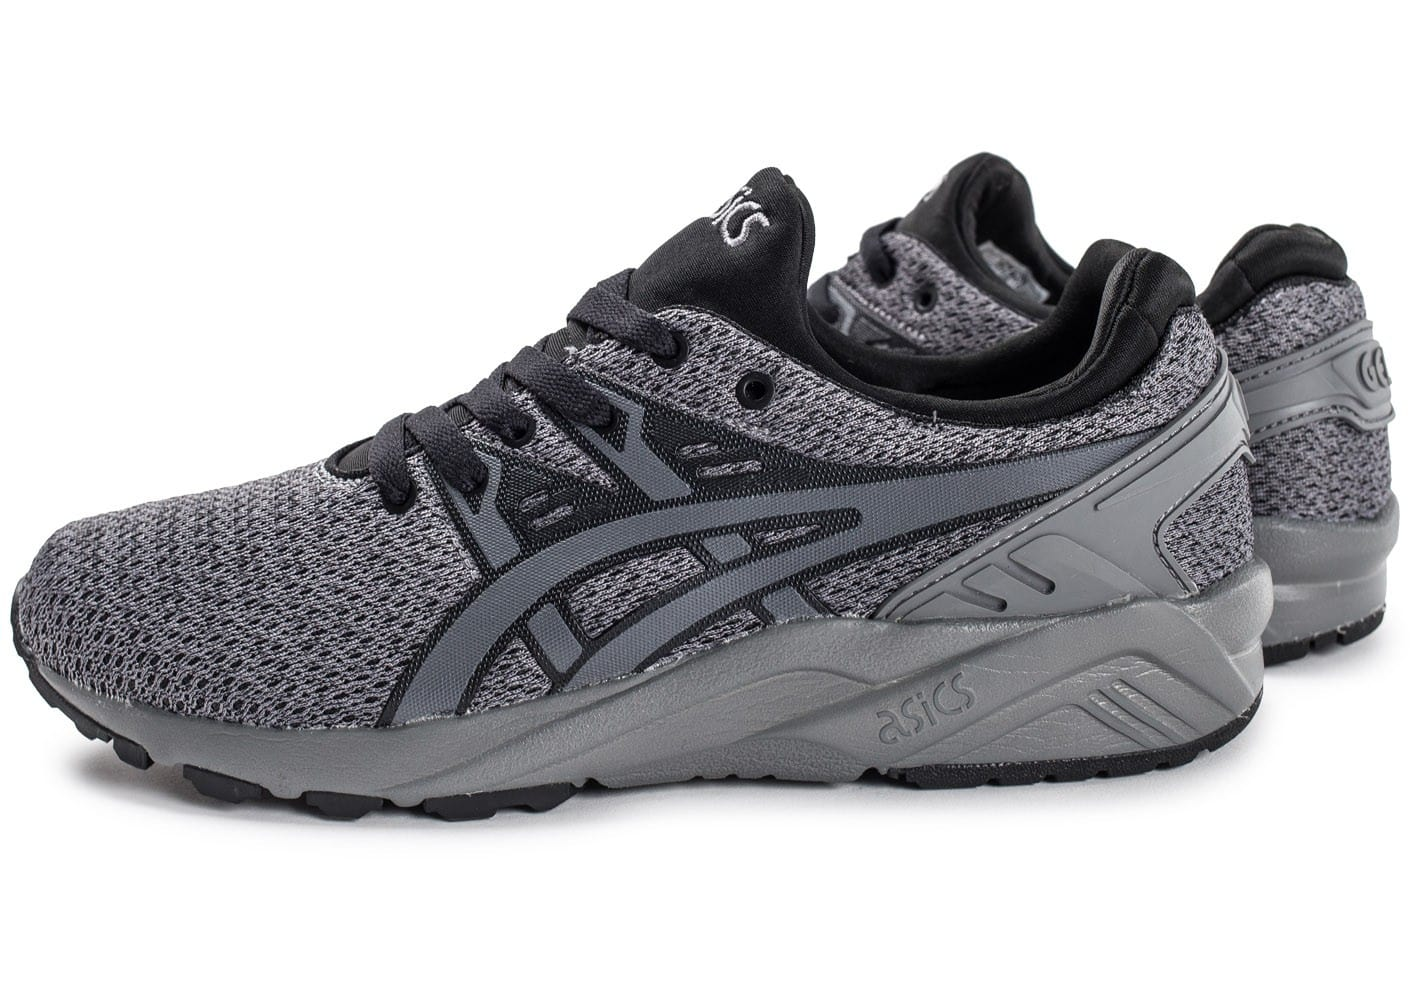 Homme Baskets Kayano Gel Chaussures Evo Anthracite Trainer Asics wa7x6qBW